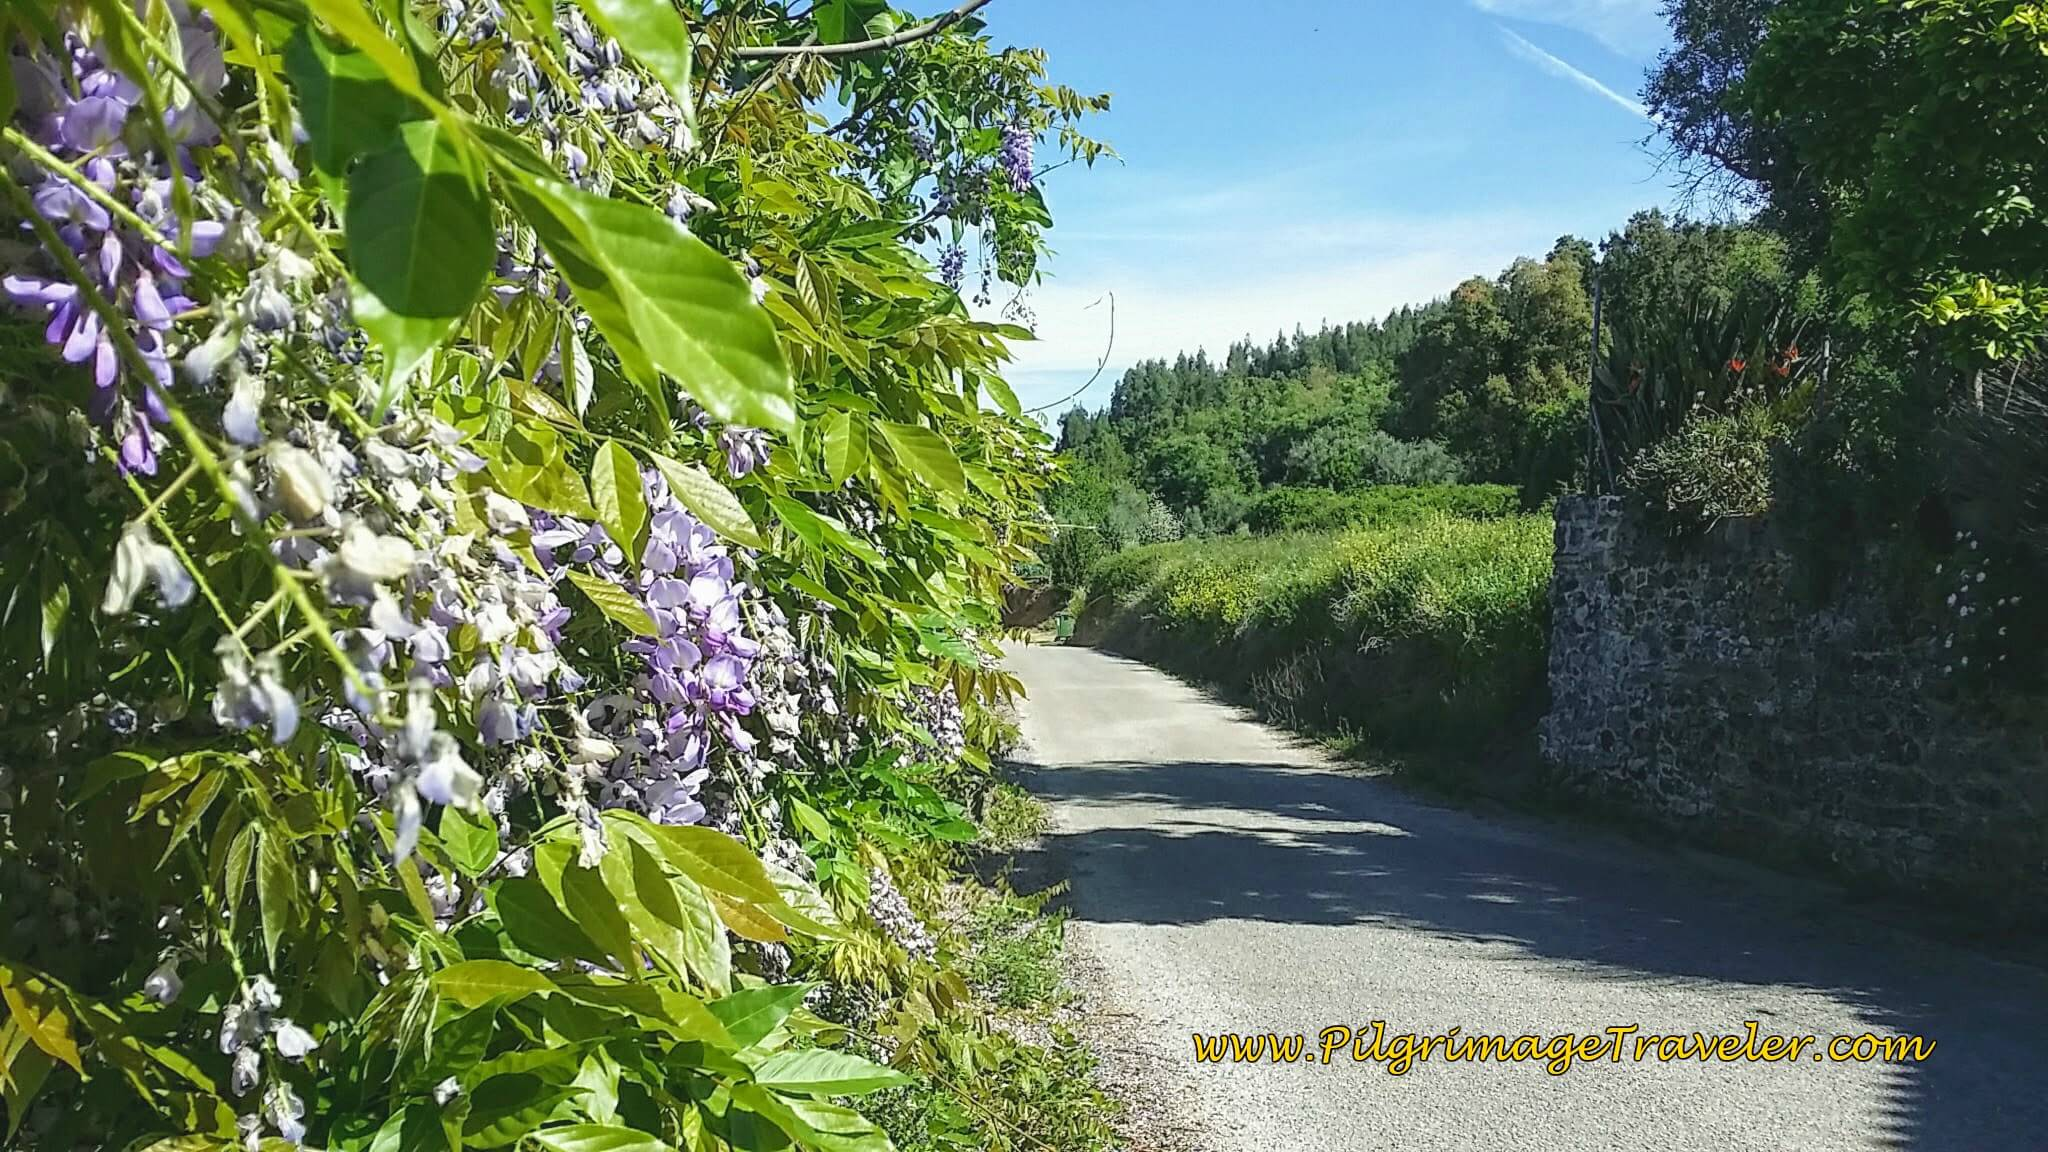 Wisteria on Country Lane